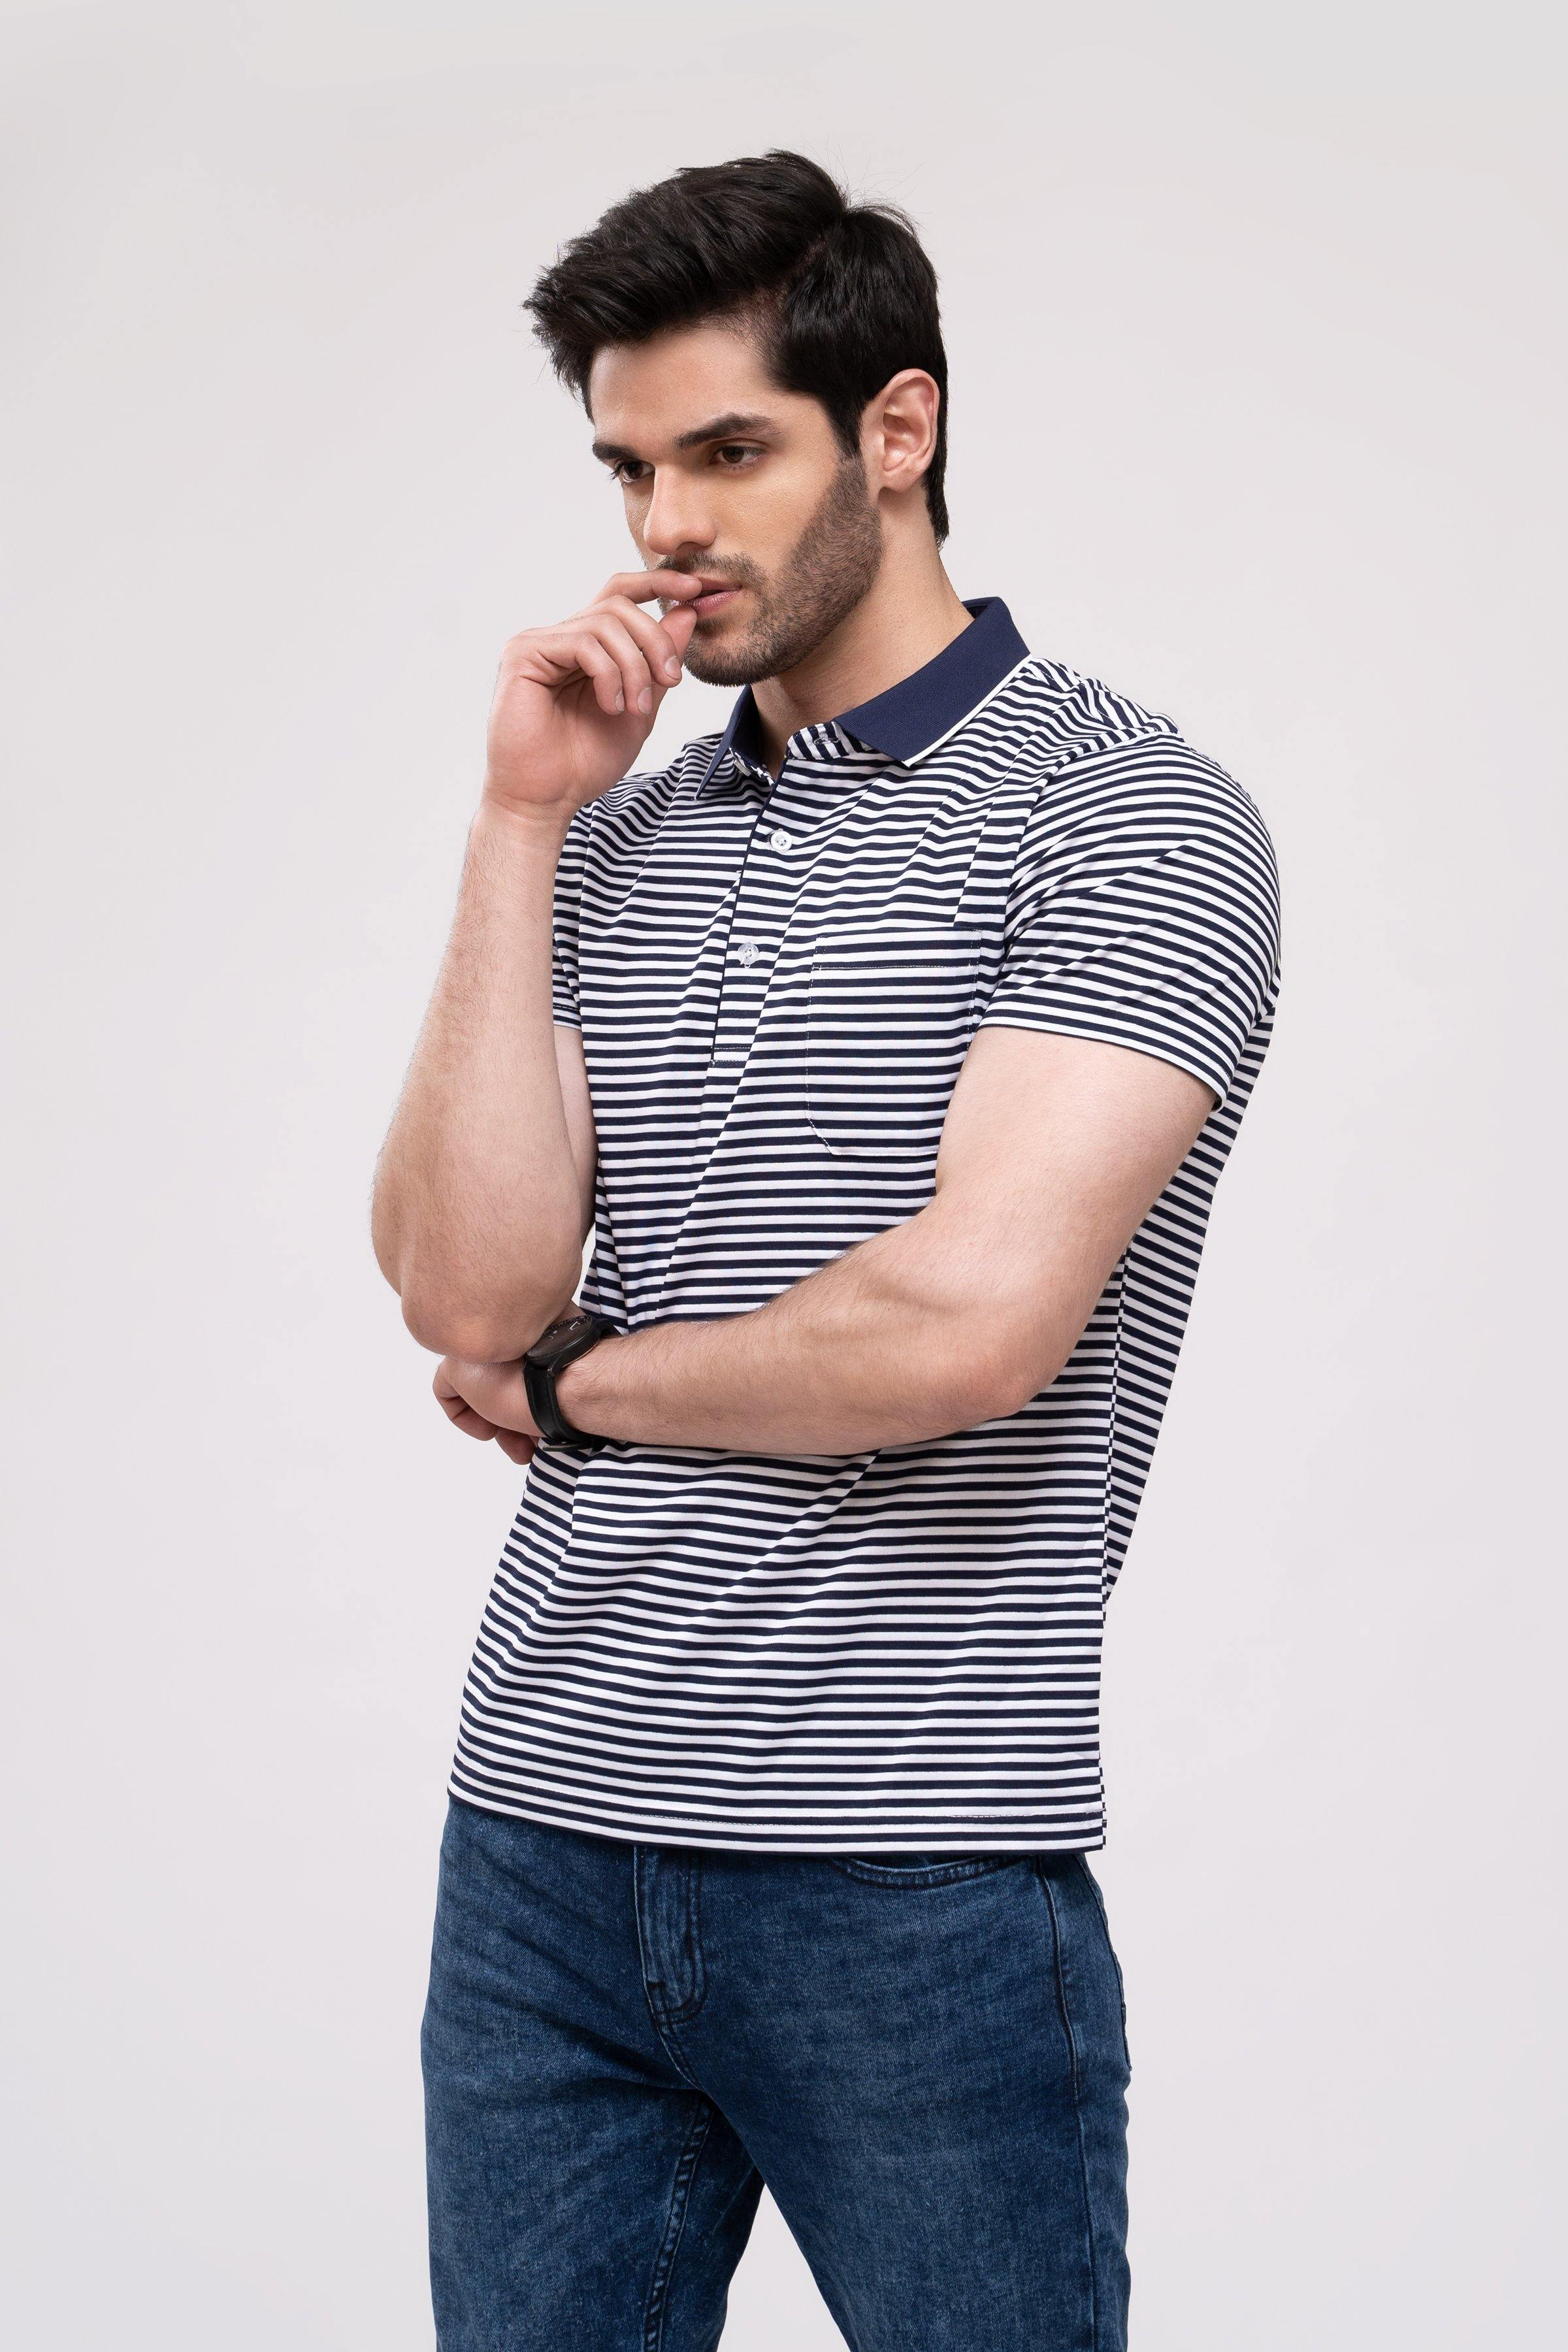 POLO SHIRT NAVY WHITE - Charcoal Clothing